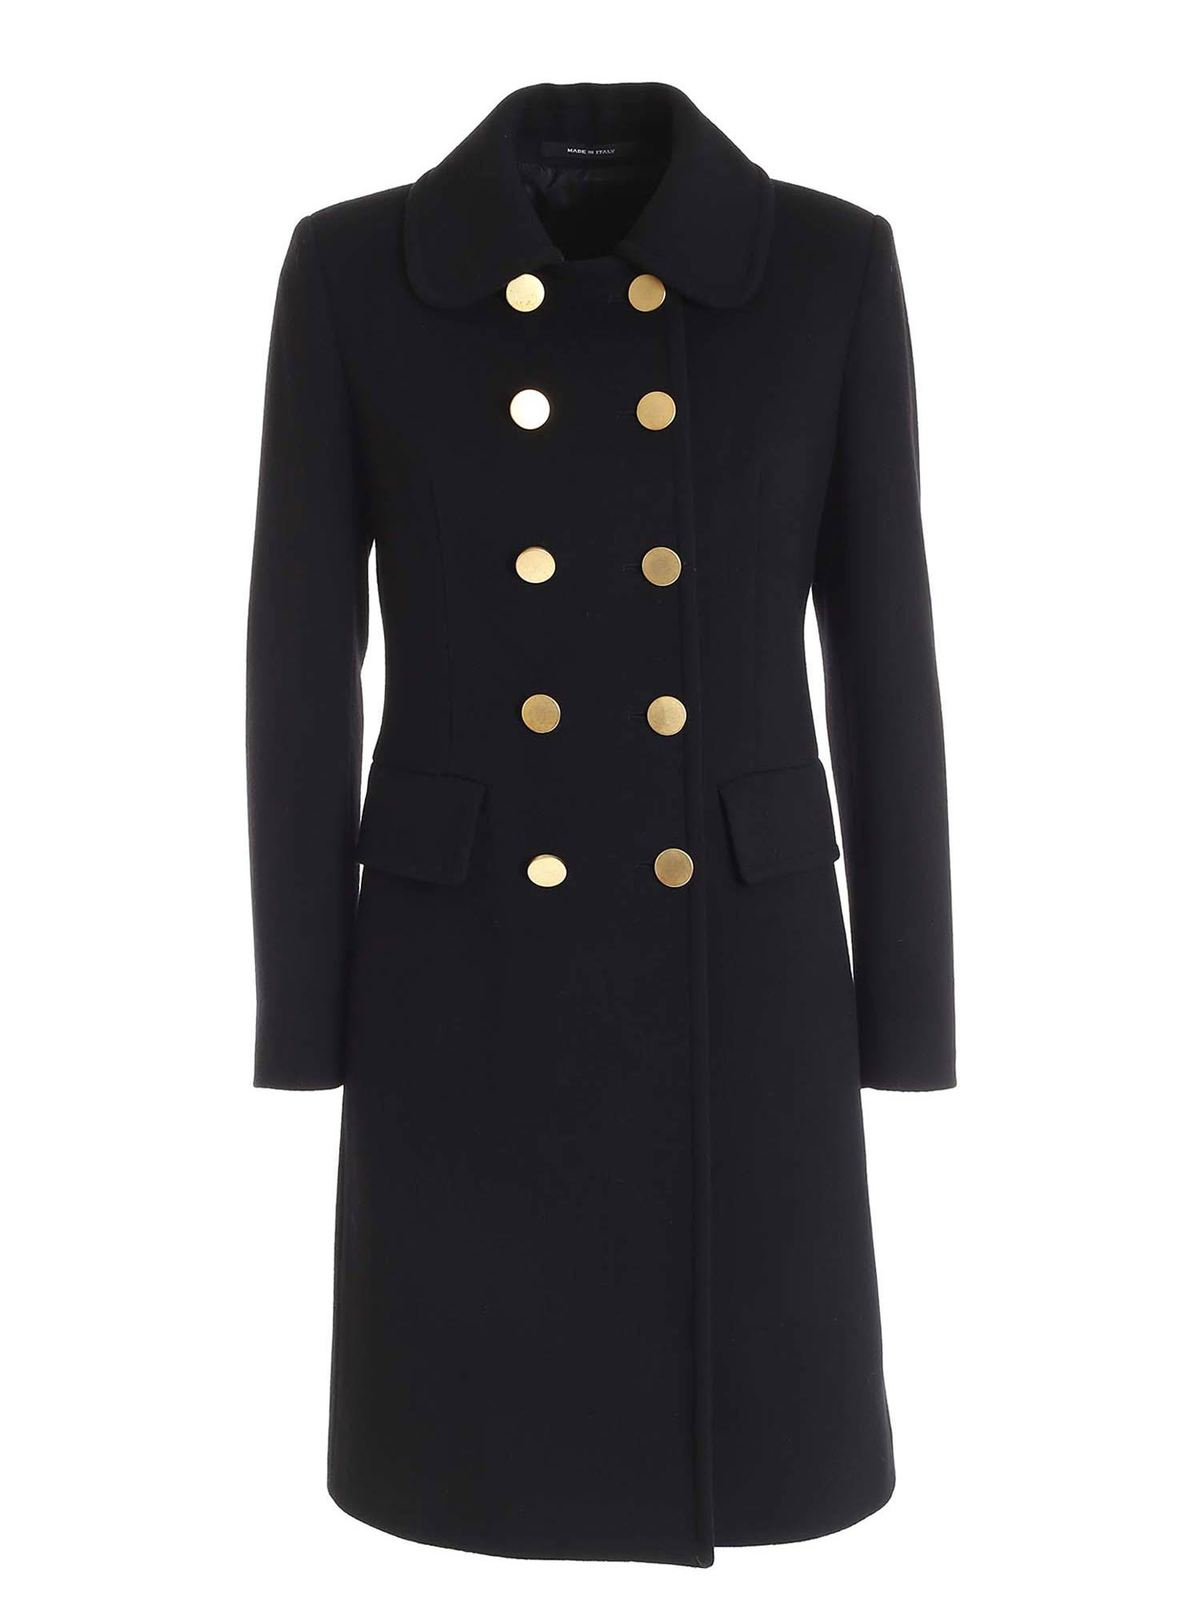 Tagliatore HOLLY DOUBLE-BREASTED COAT IN BLACK